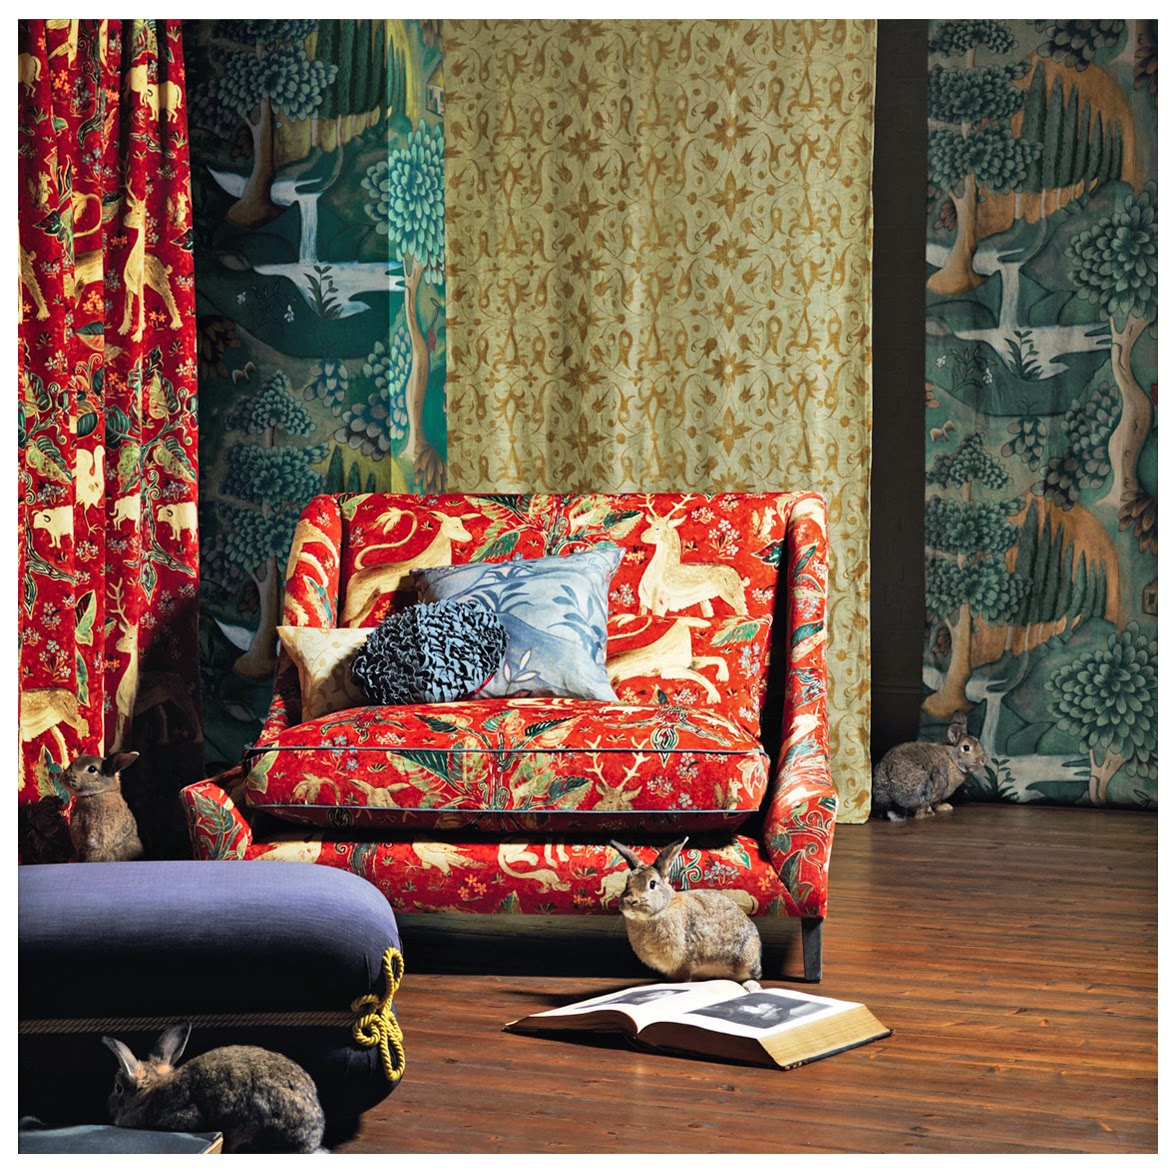 The Arden Collection for Zoffany